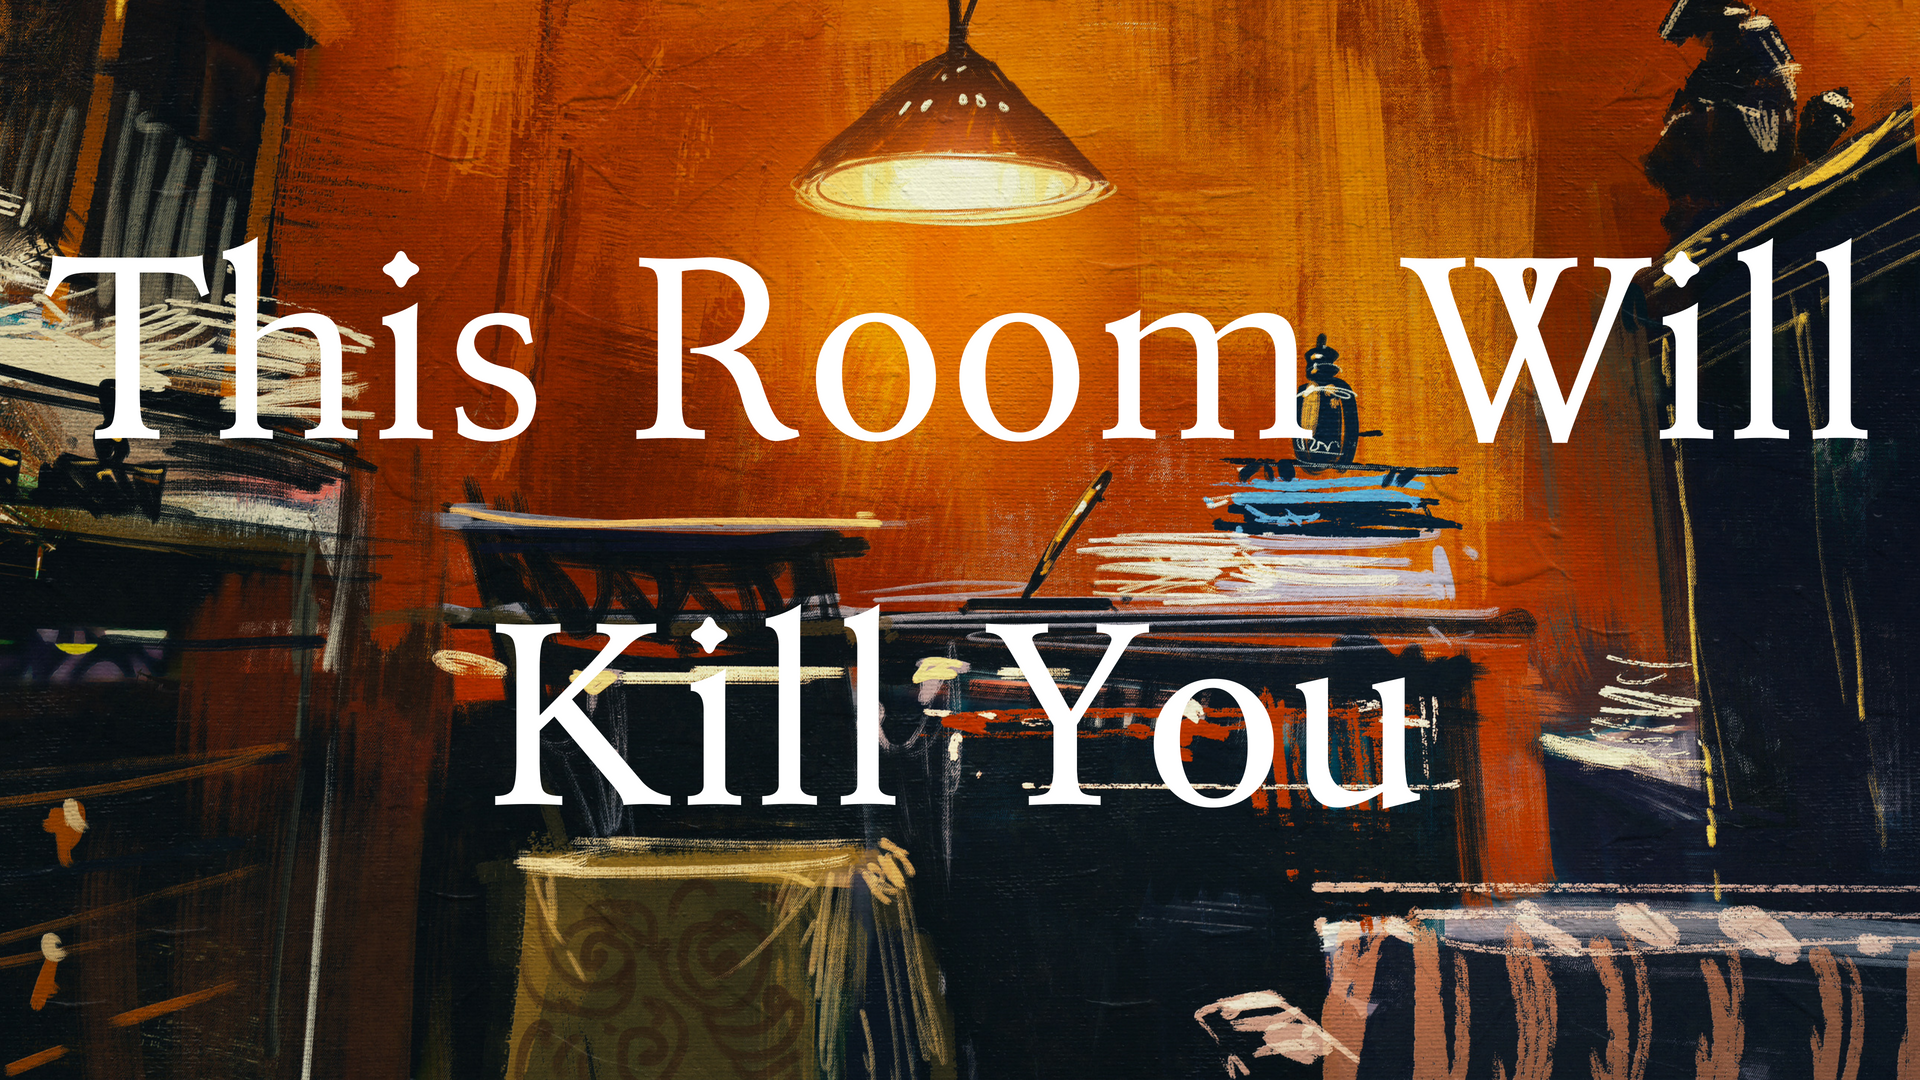 This Room Will Kill You